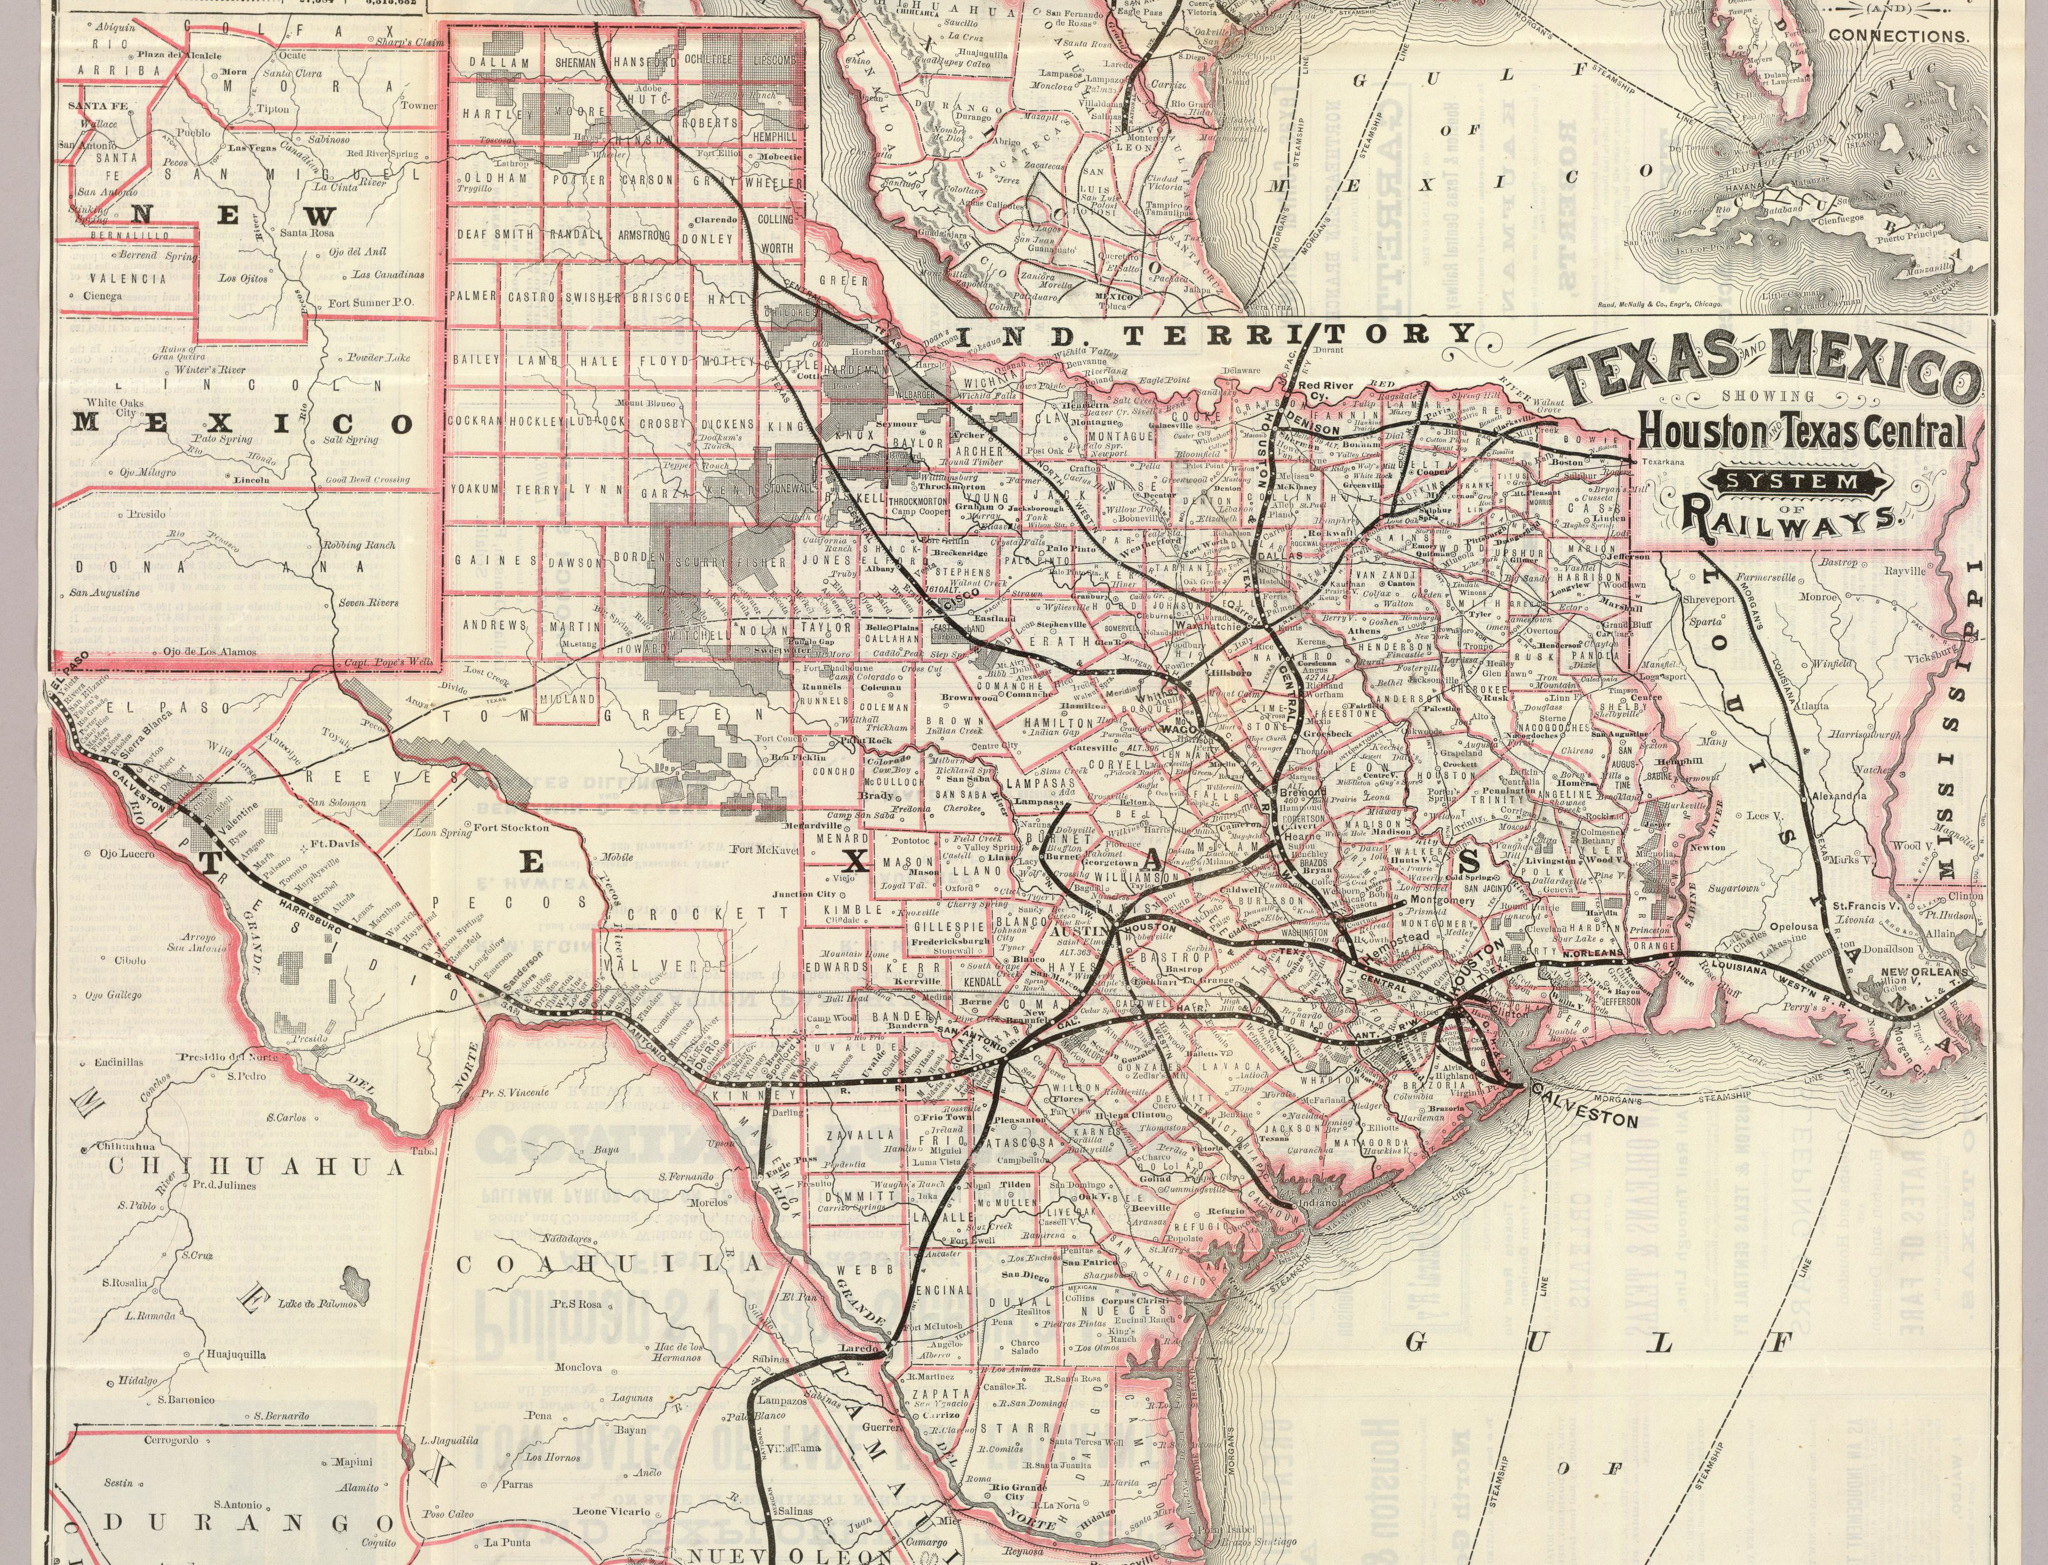 1885 Houston & Texas Central Railroad Map